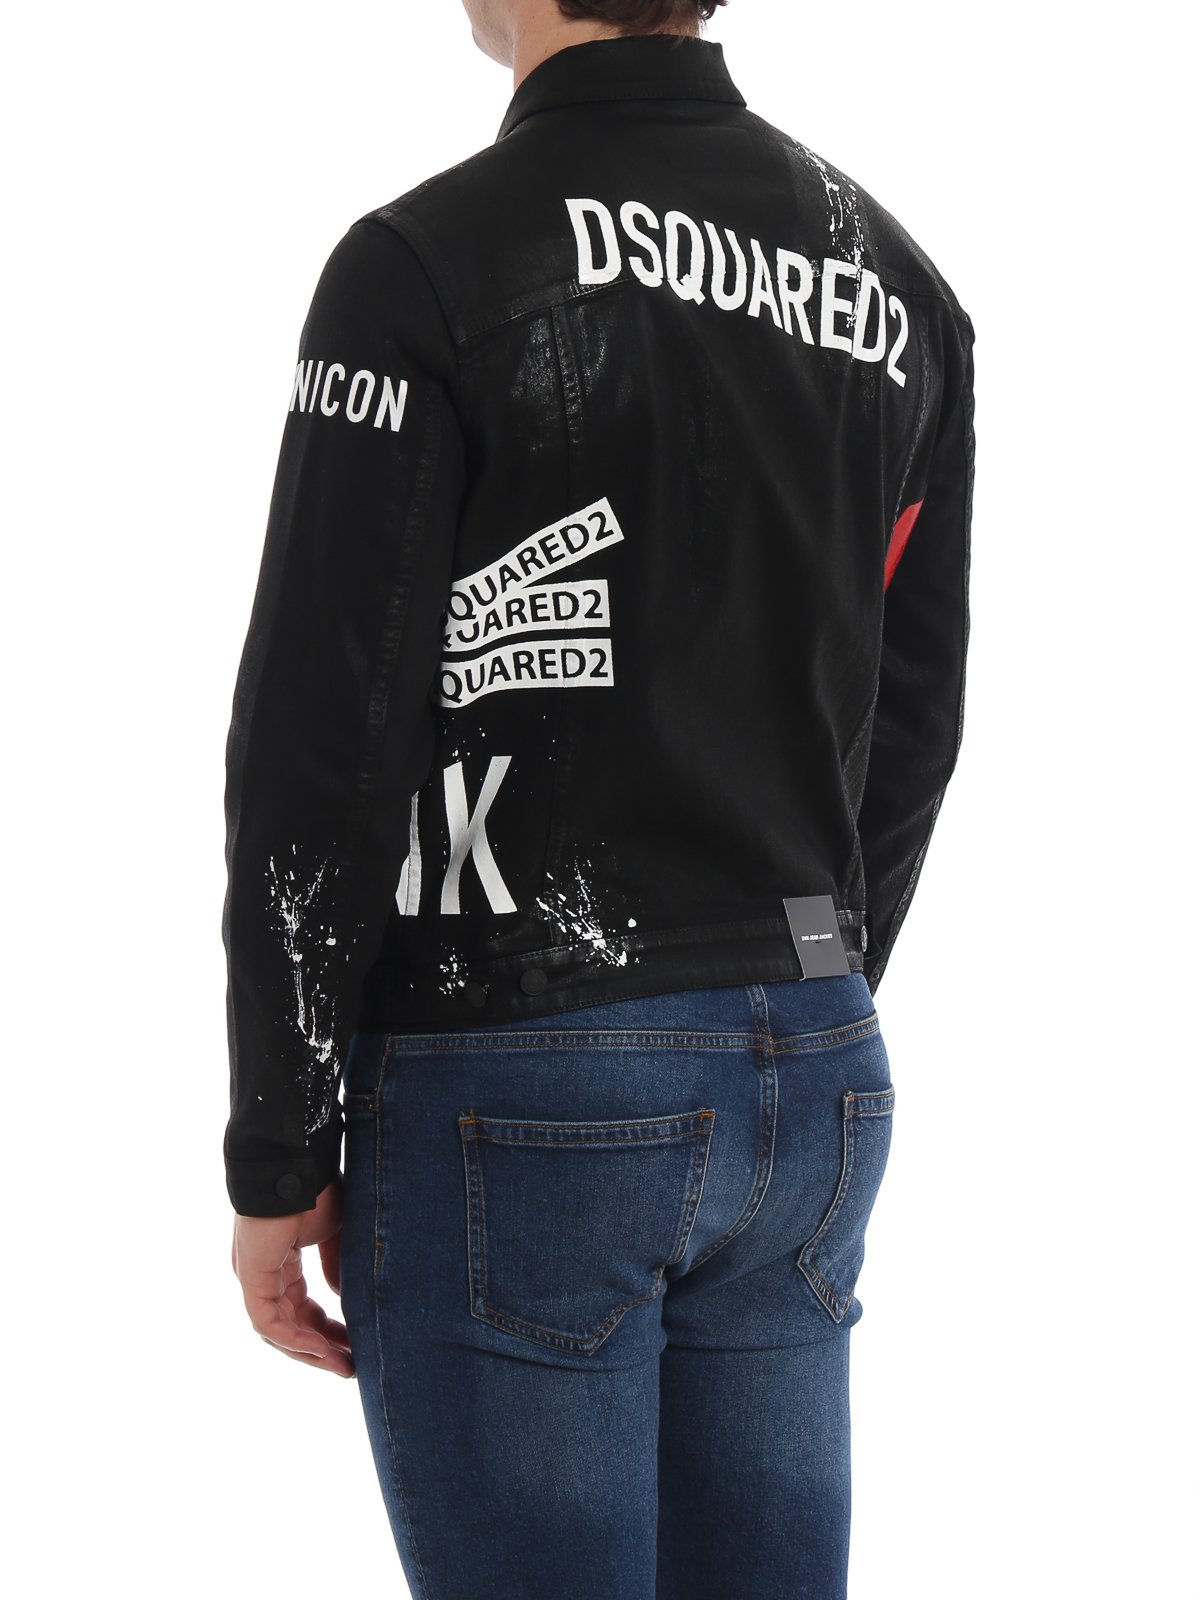 new product 55a96 e4037 Dsquared2 - Giacca jeans New Punk Dan Icon nera - giacche ...